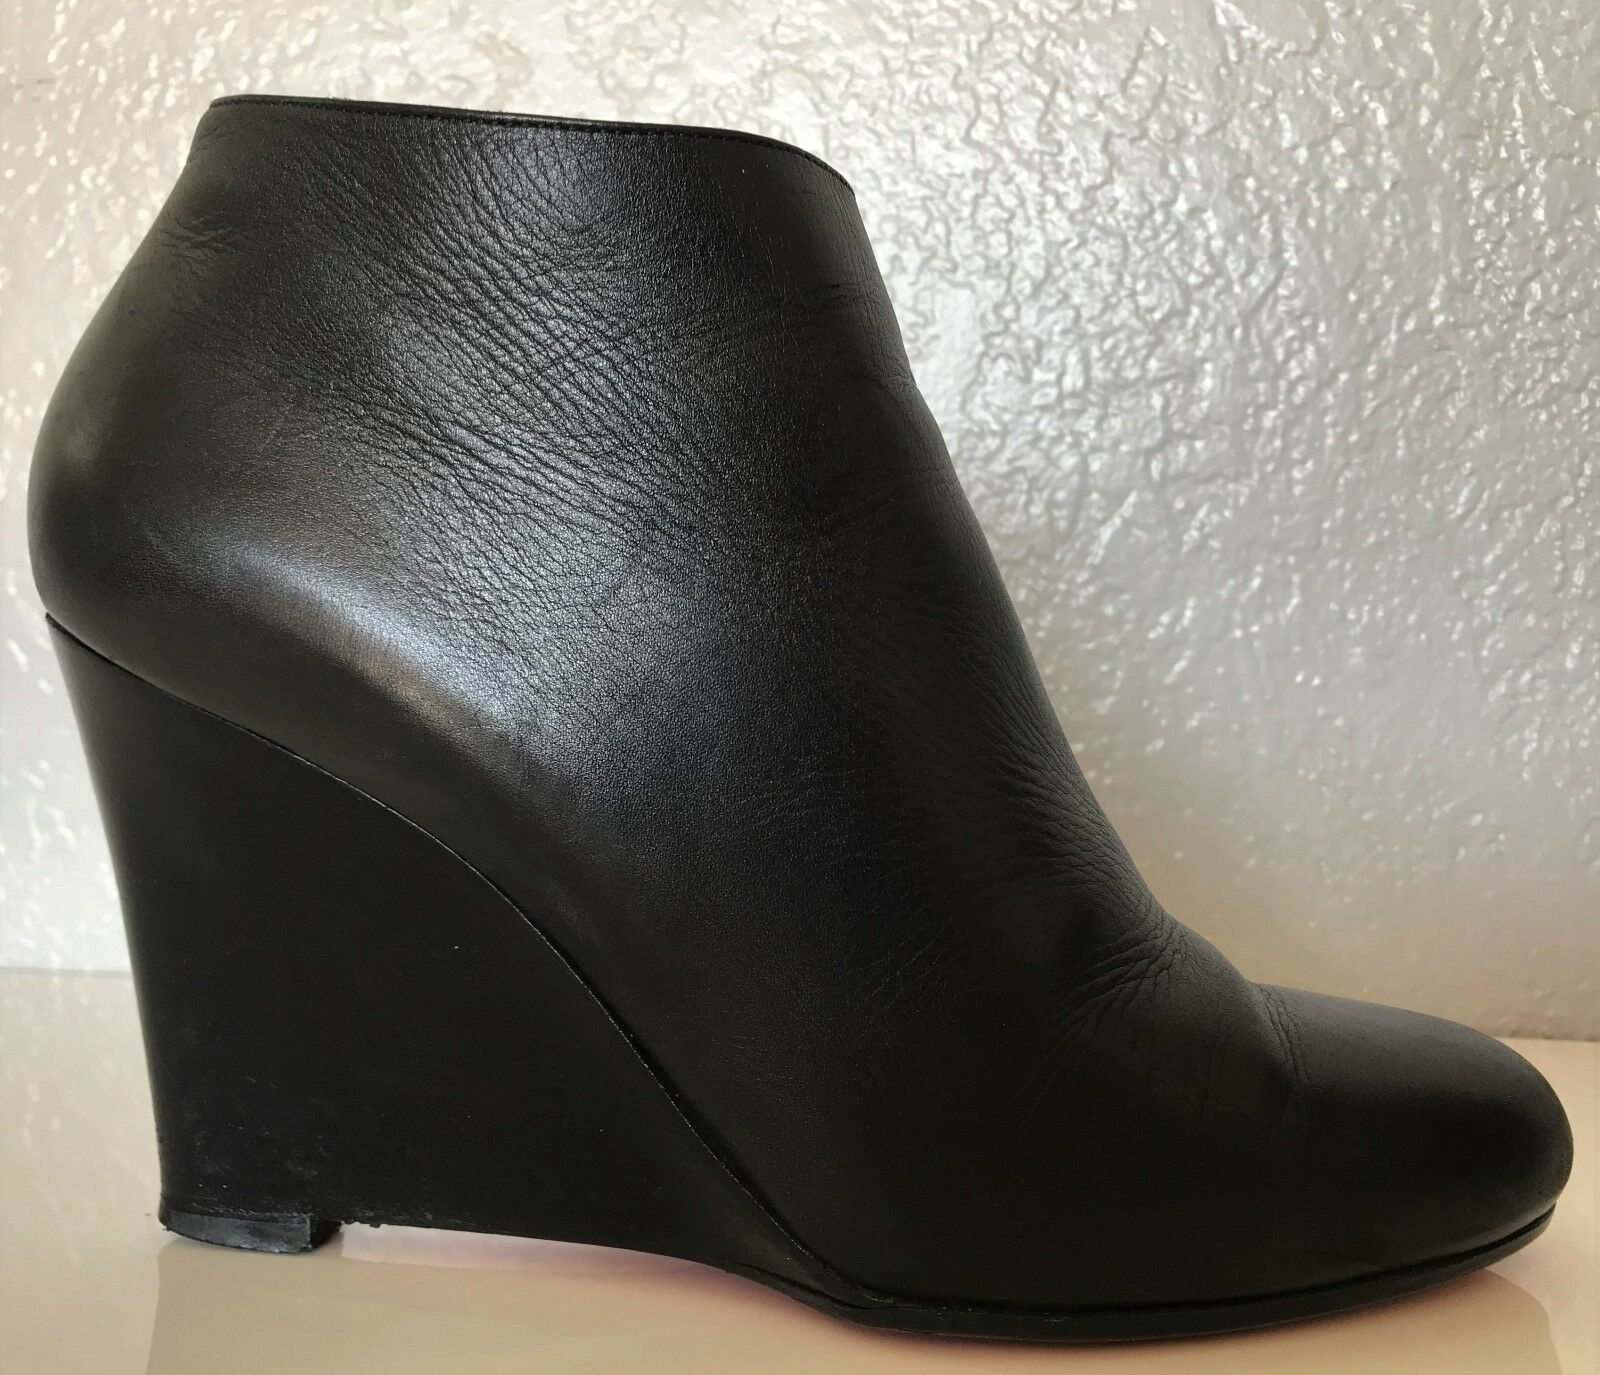 CHRISTIAN LOUBOUTIN Black Leather Wedge Heel Ankle Boot Boot Ankle 8.5-9 US 39 Bootie Daf 75dfa1